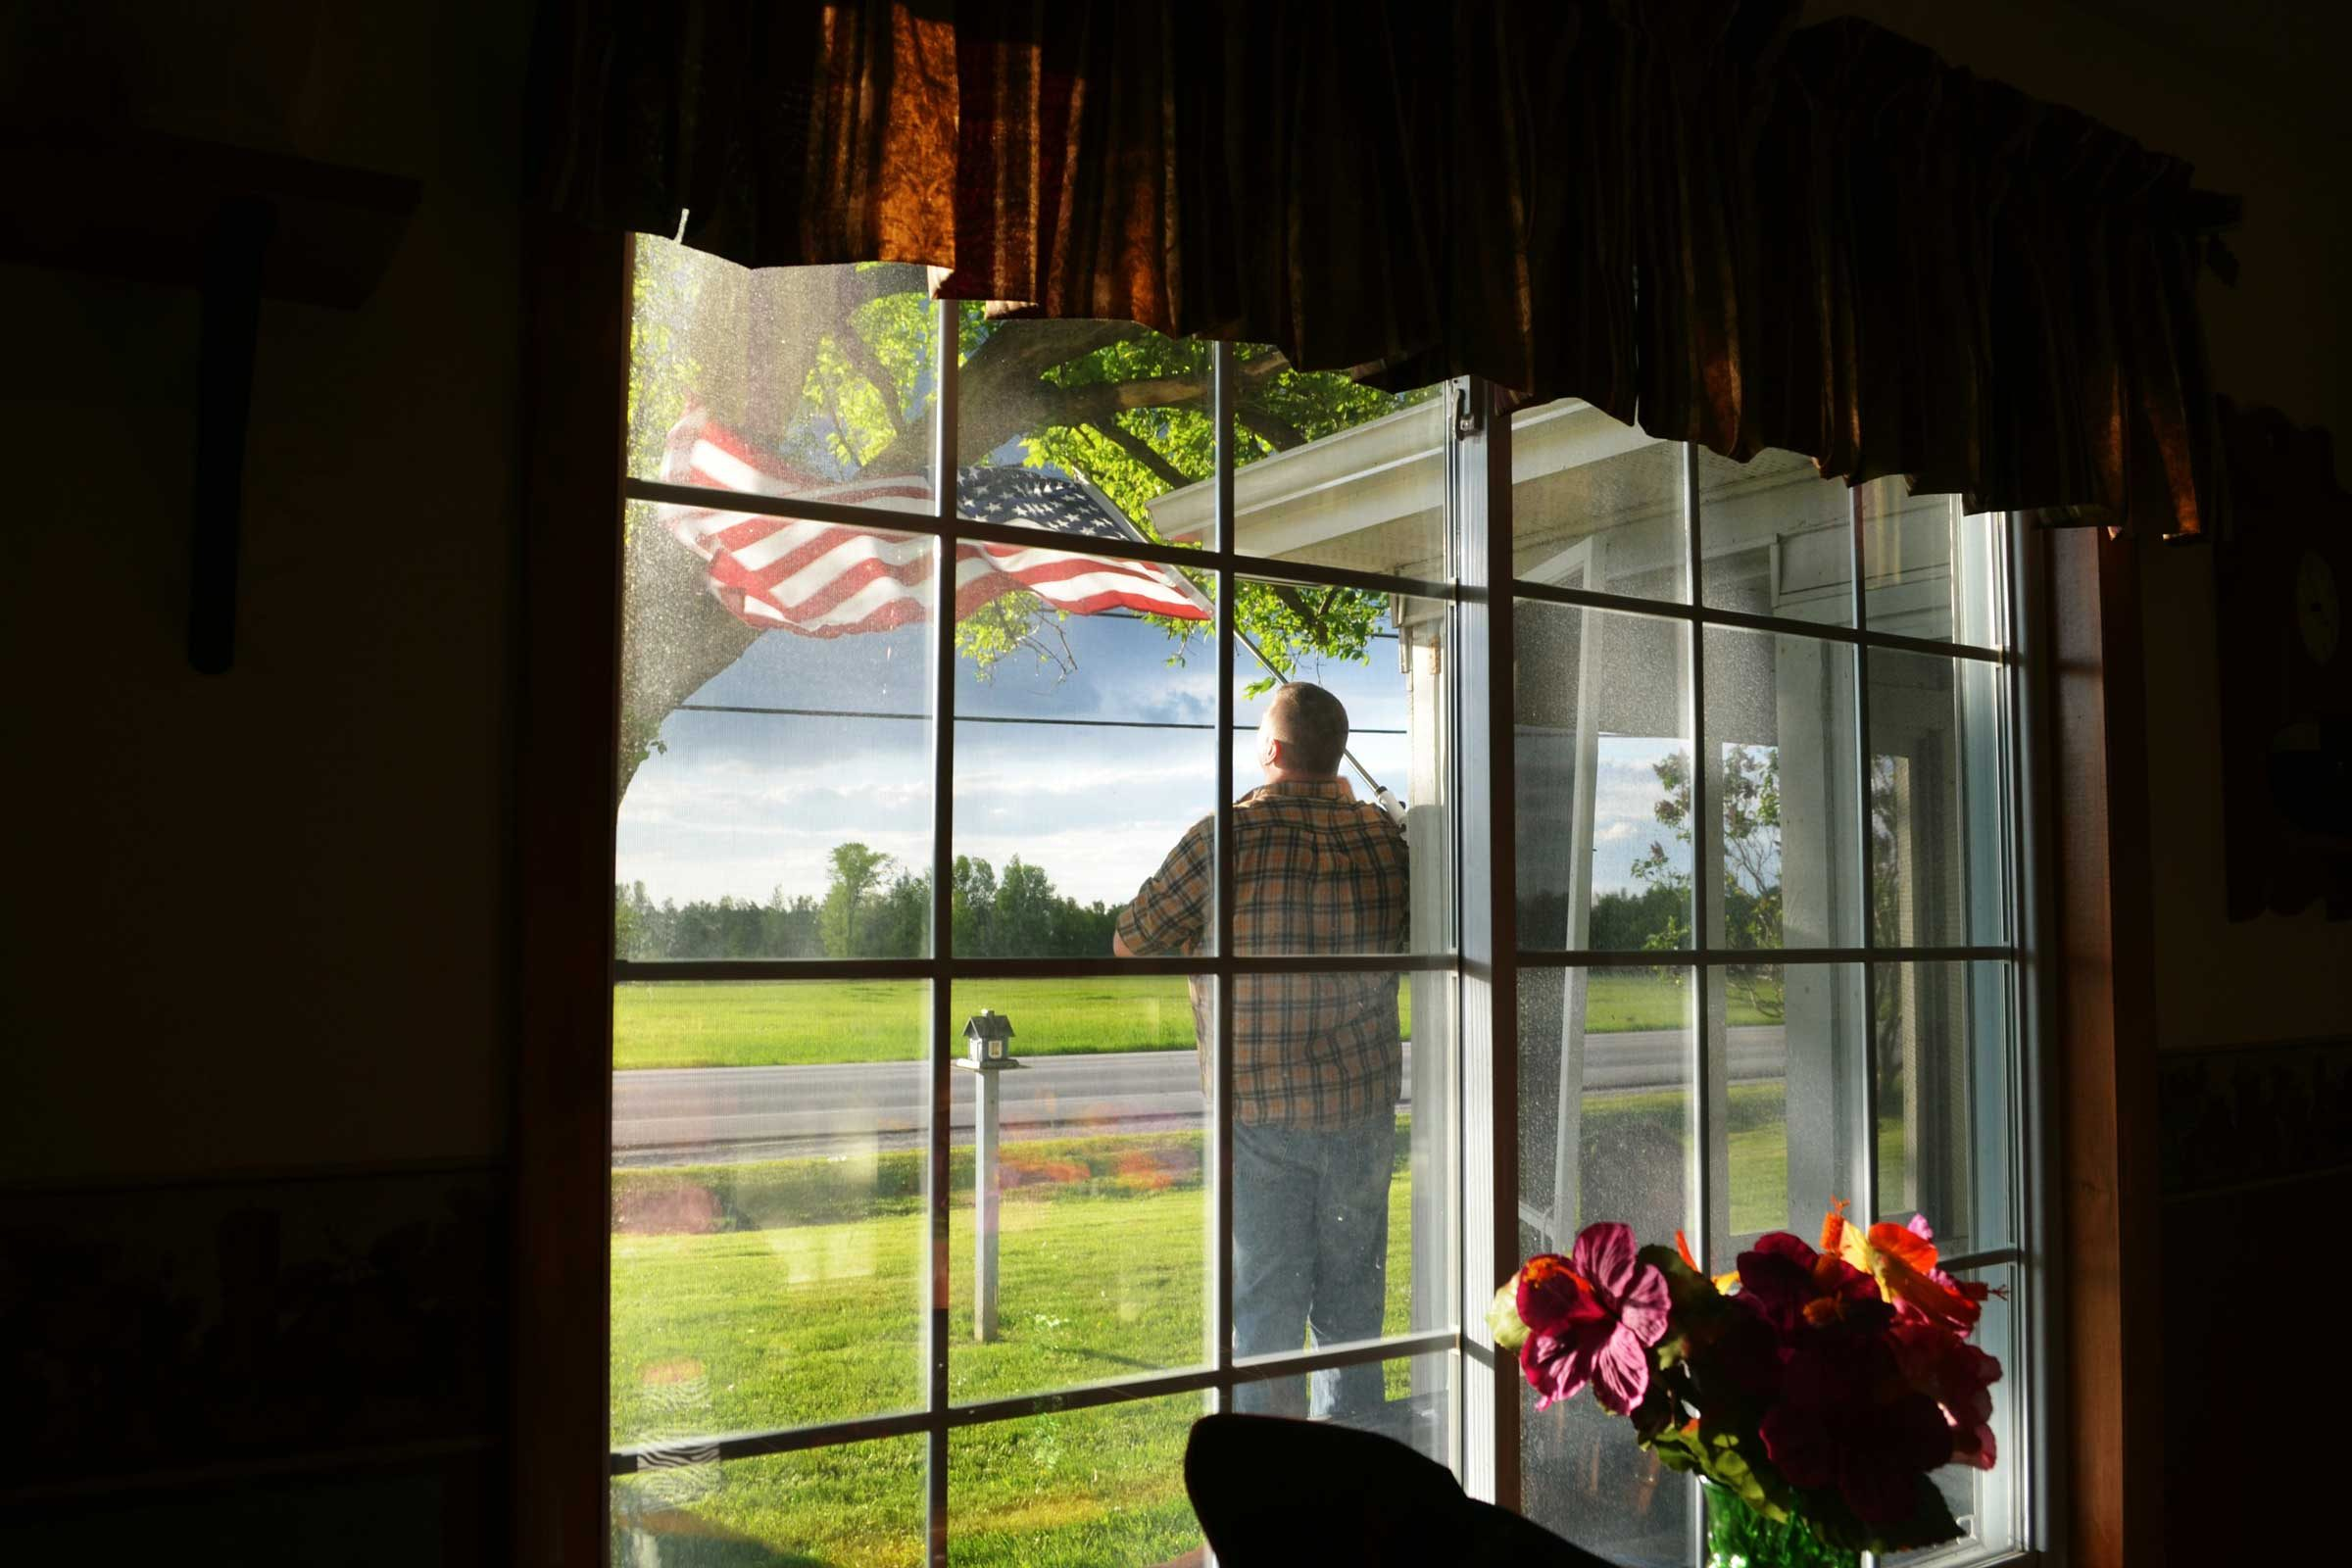 outside a window, a man stands admiring an american flag in the sunlight after a storm